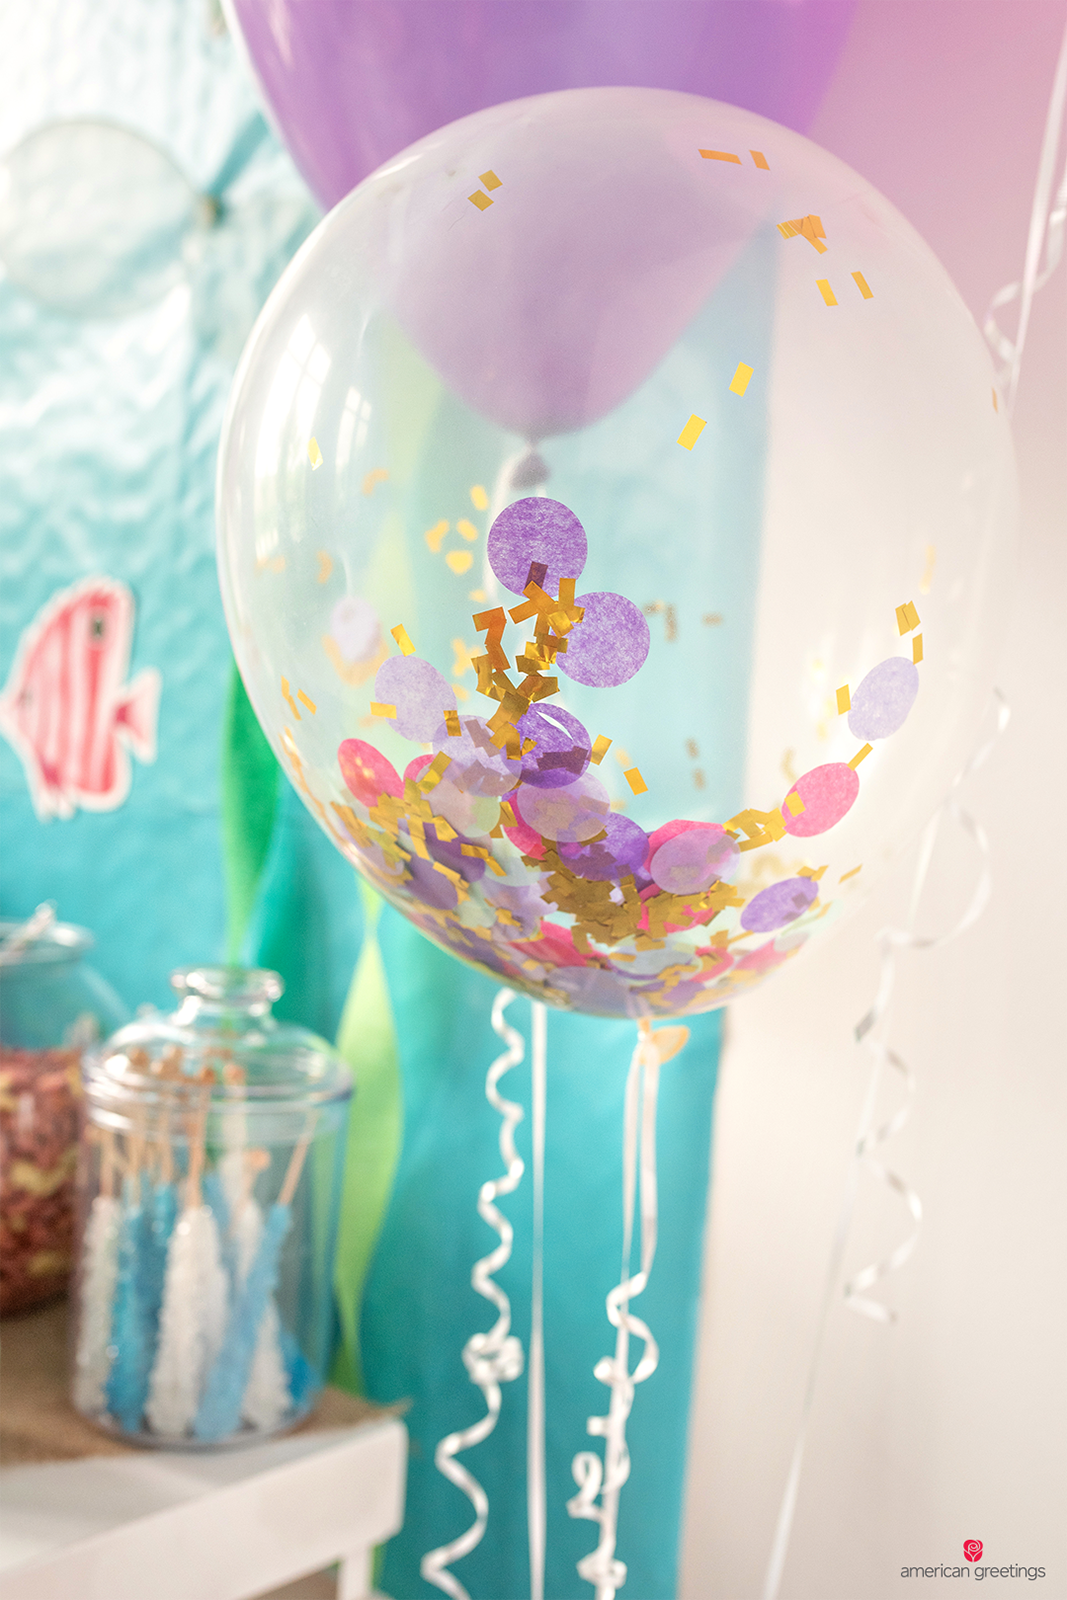 Helium balloons filled with confetti